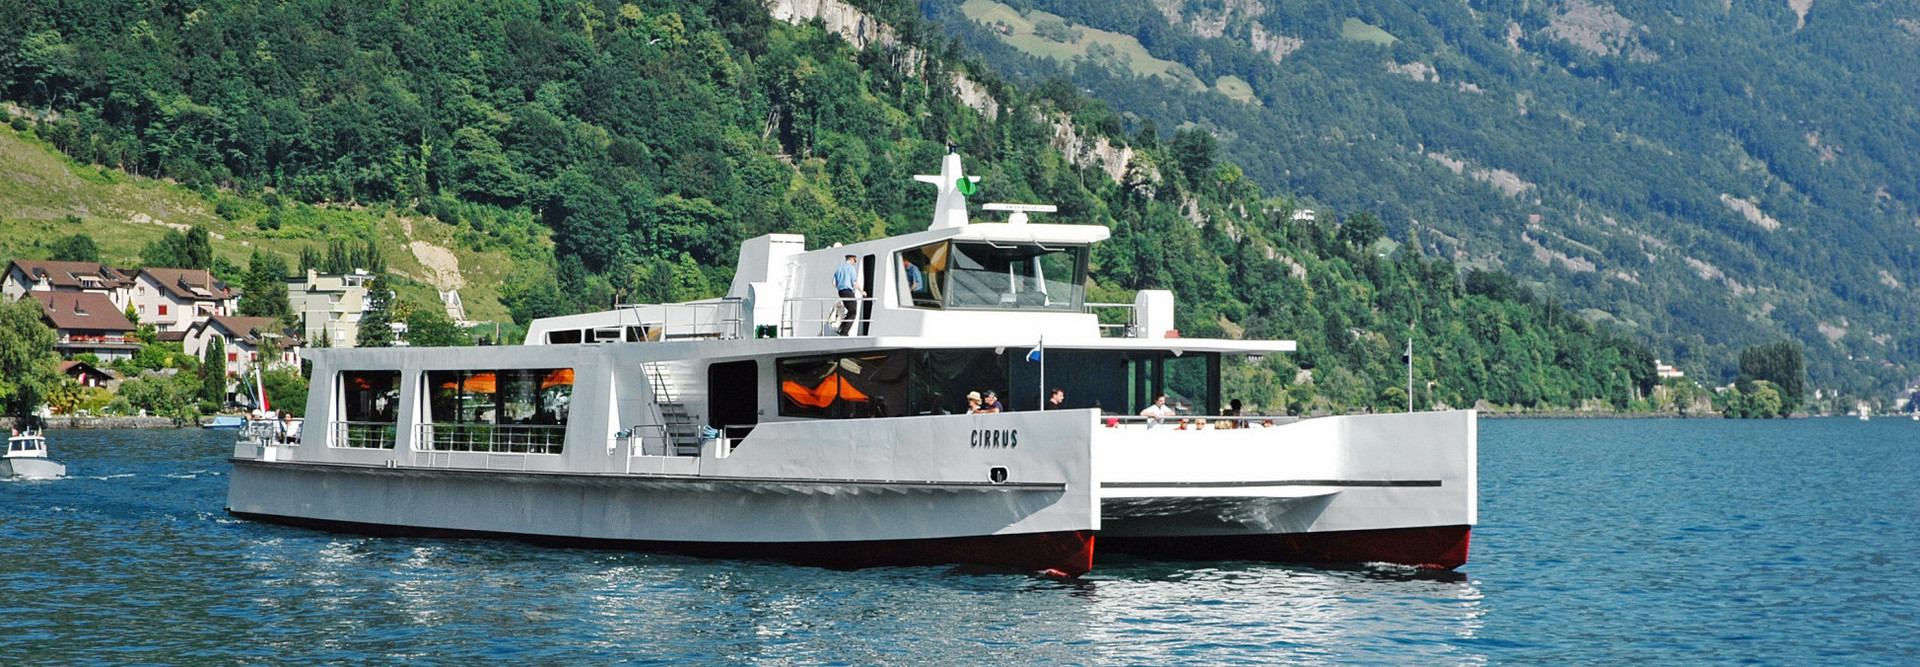 On a beautiful summer's day the motor ship Cirrus sails on Lake Lucerne.